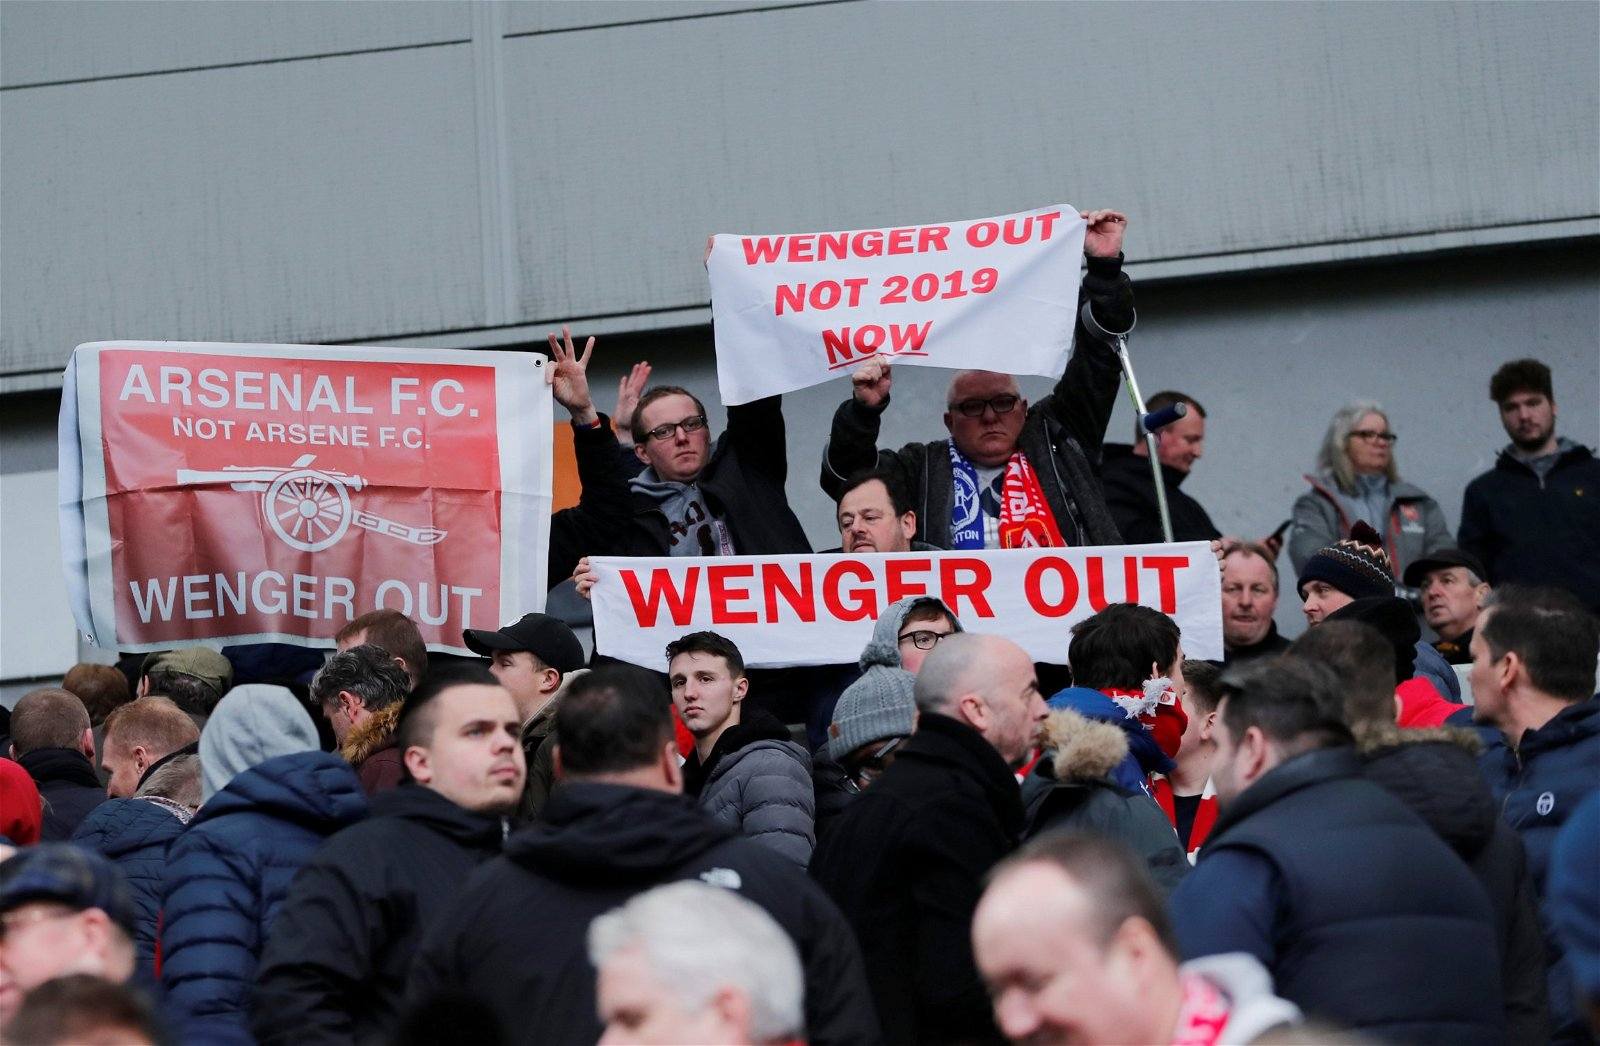 Arsenal fans holding Wenger Out signs during a 2-1defeat to Brighton